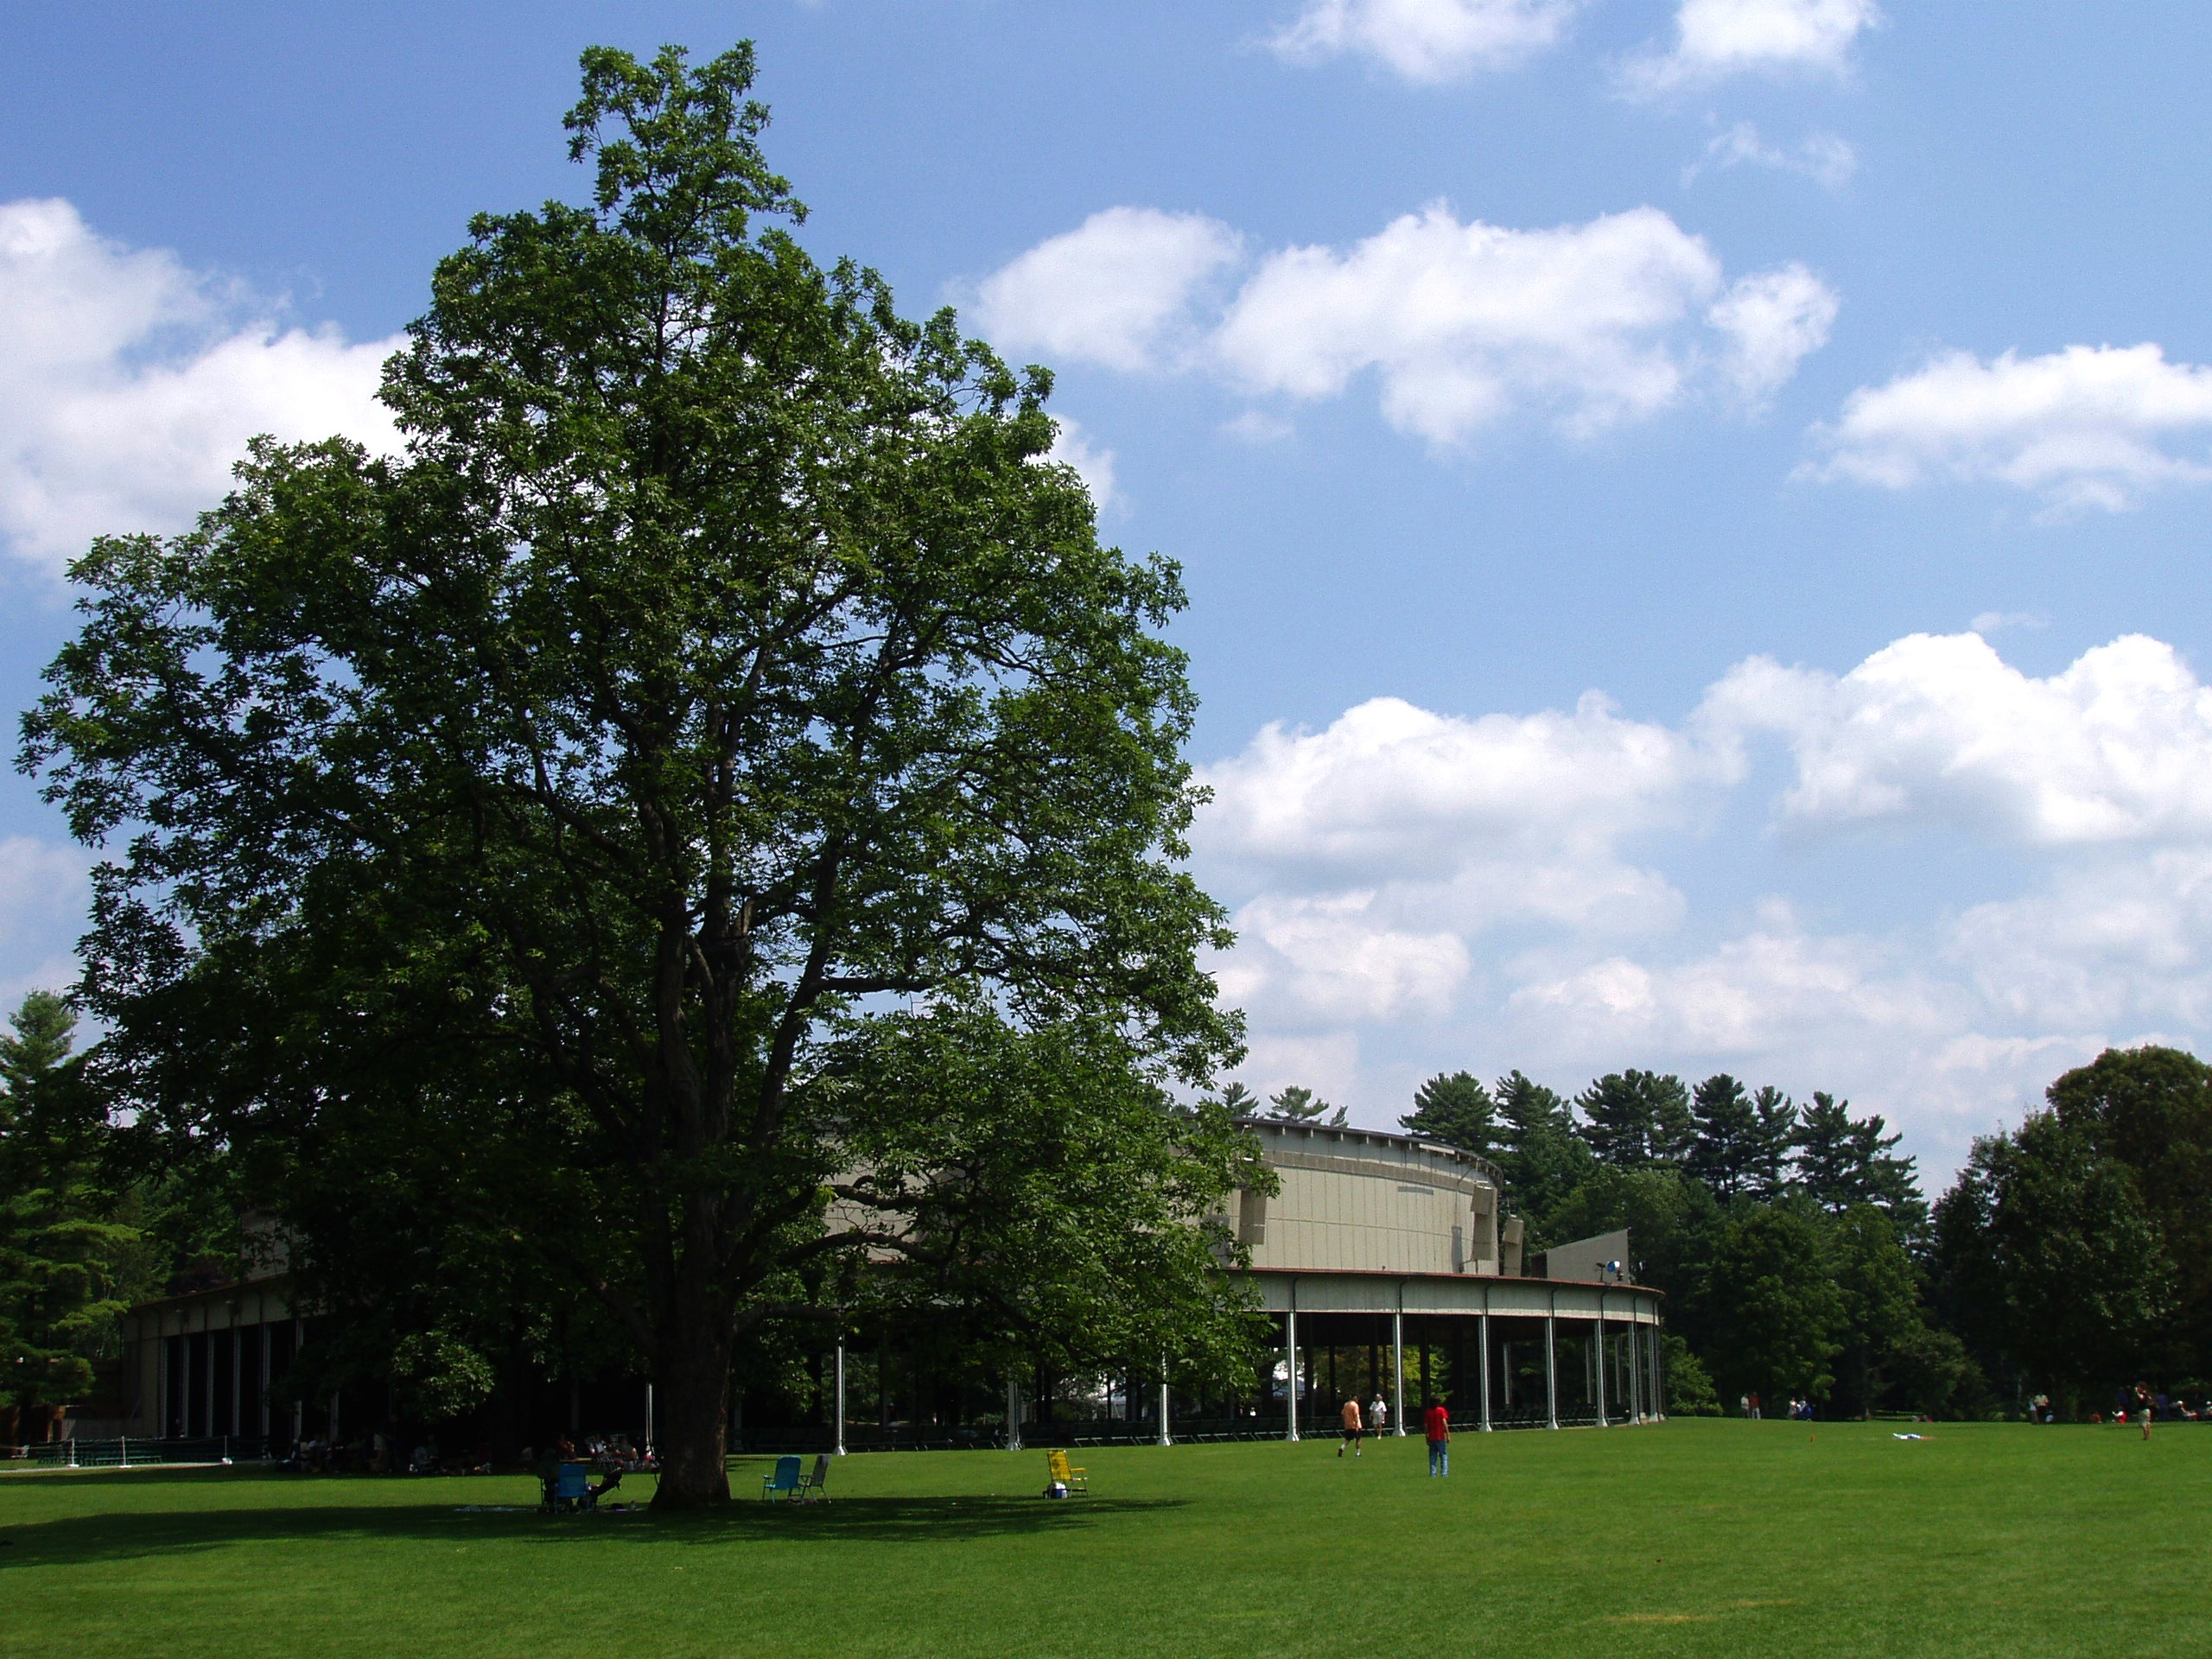 File:Tanglewood Music Shed and Lawn, Lenox, MA.JPG ...